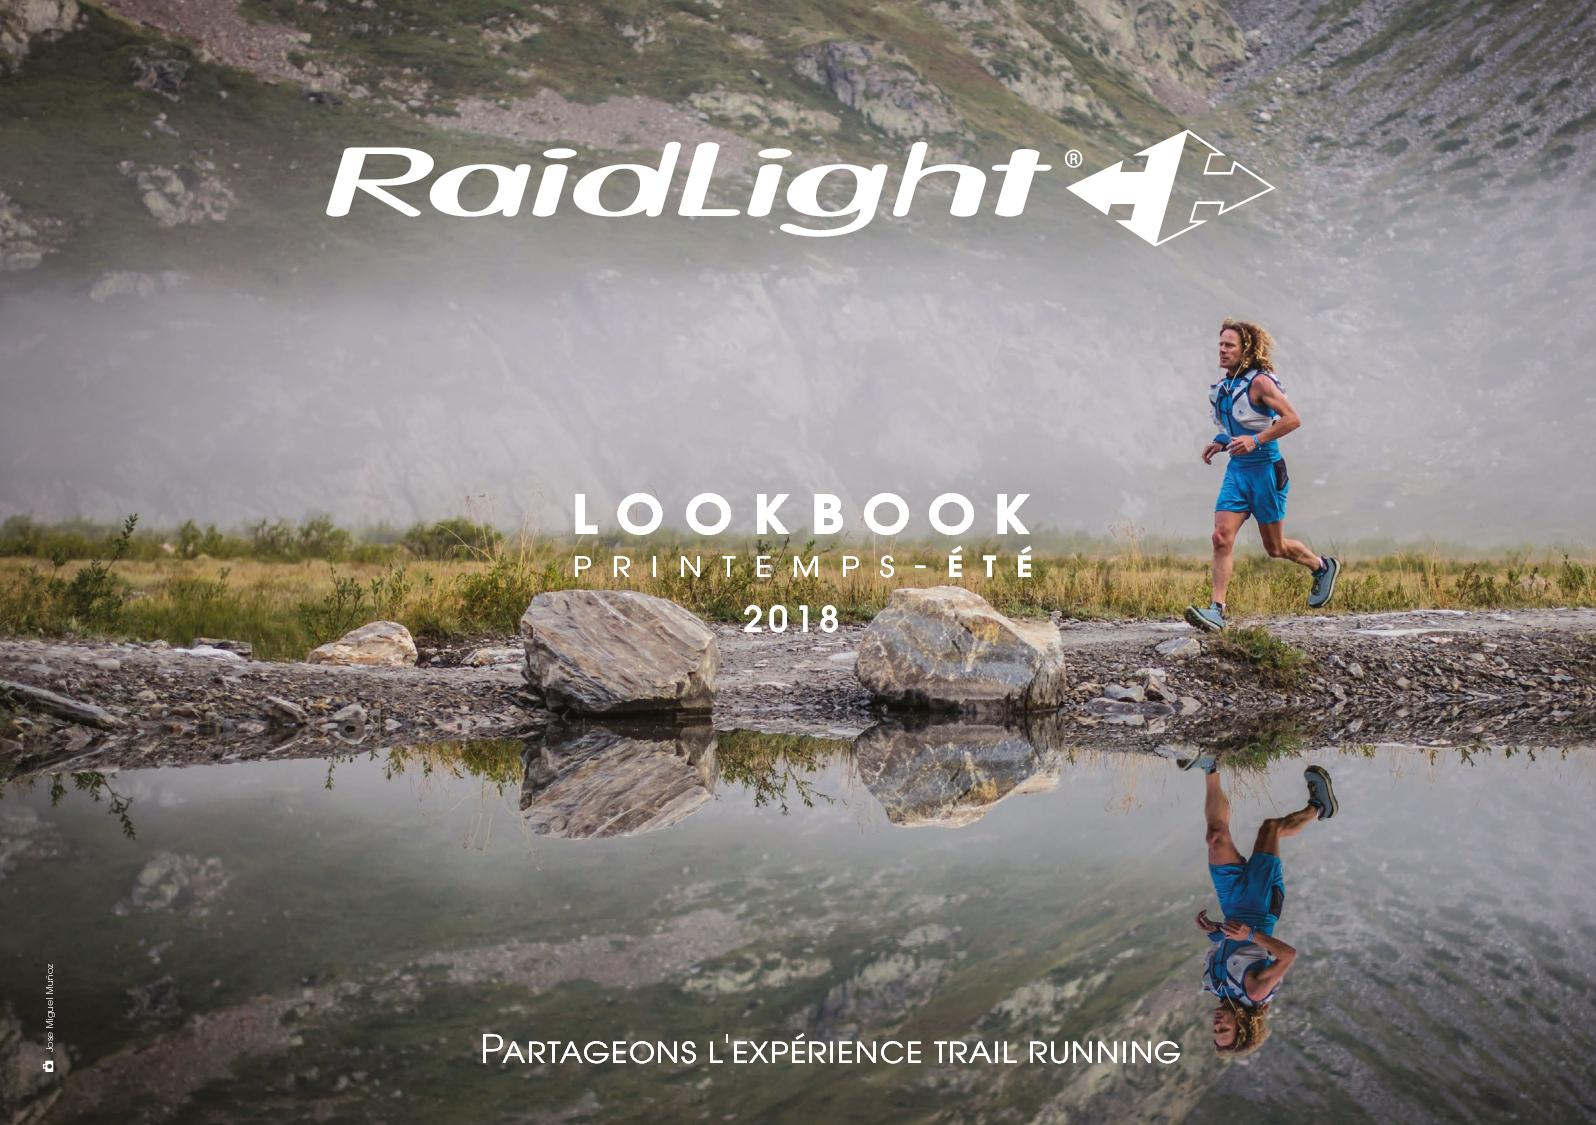 2018fr Raidlight Calaméo Pe Lookbook Raidlight Calaméo E2IWDH9